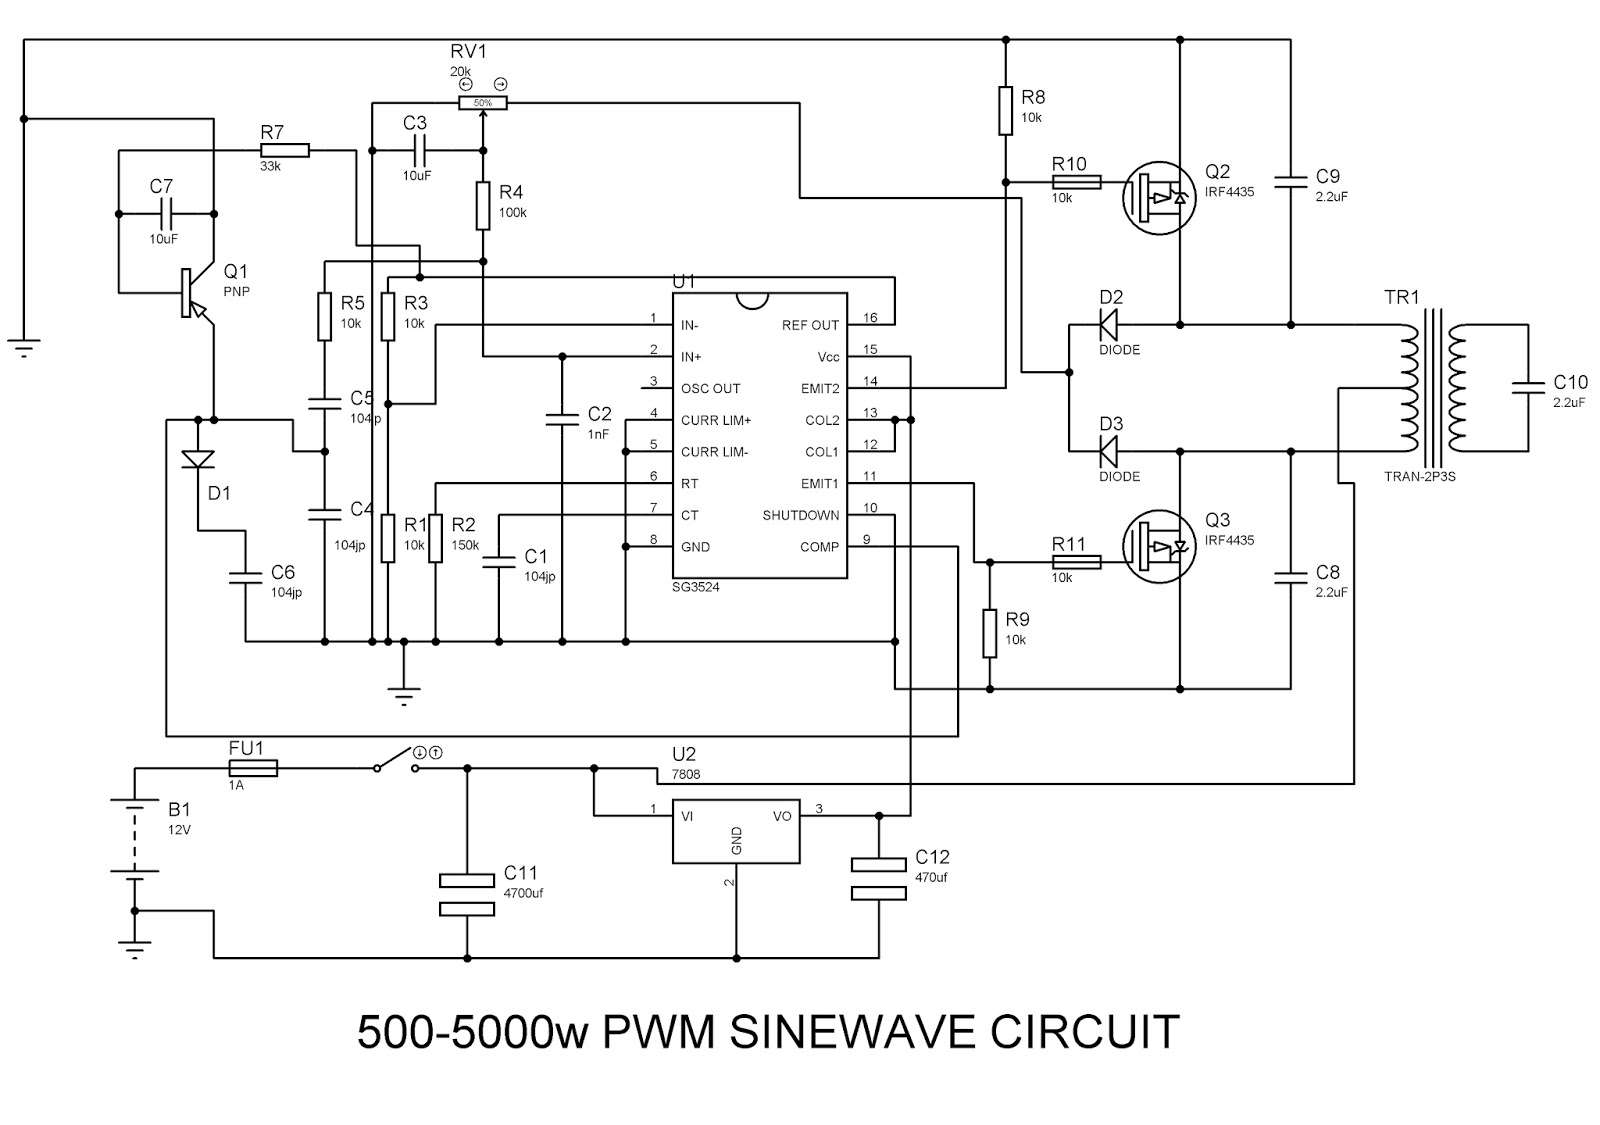 sinewave inverter circuit SG3524(PWM)  SL technological